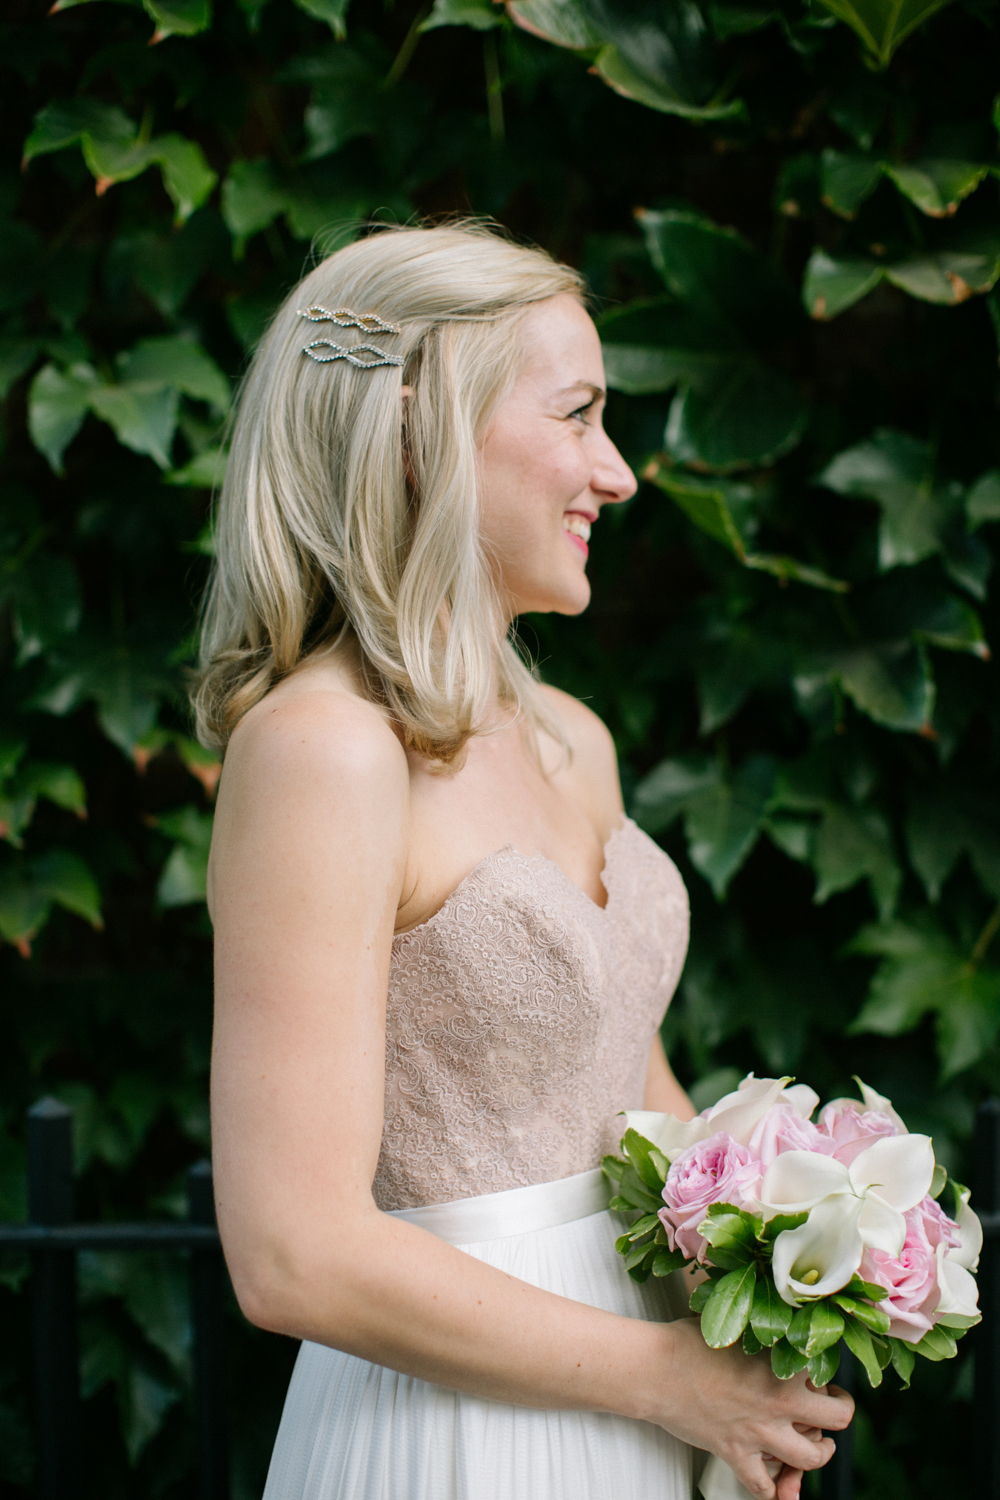 West Village Intimate Wedding from Amber Marlow